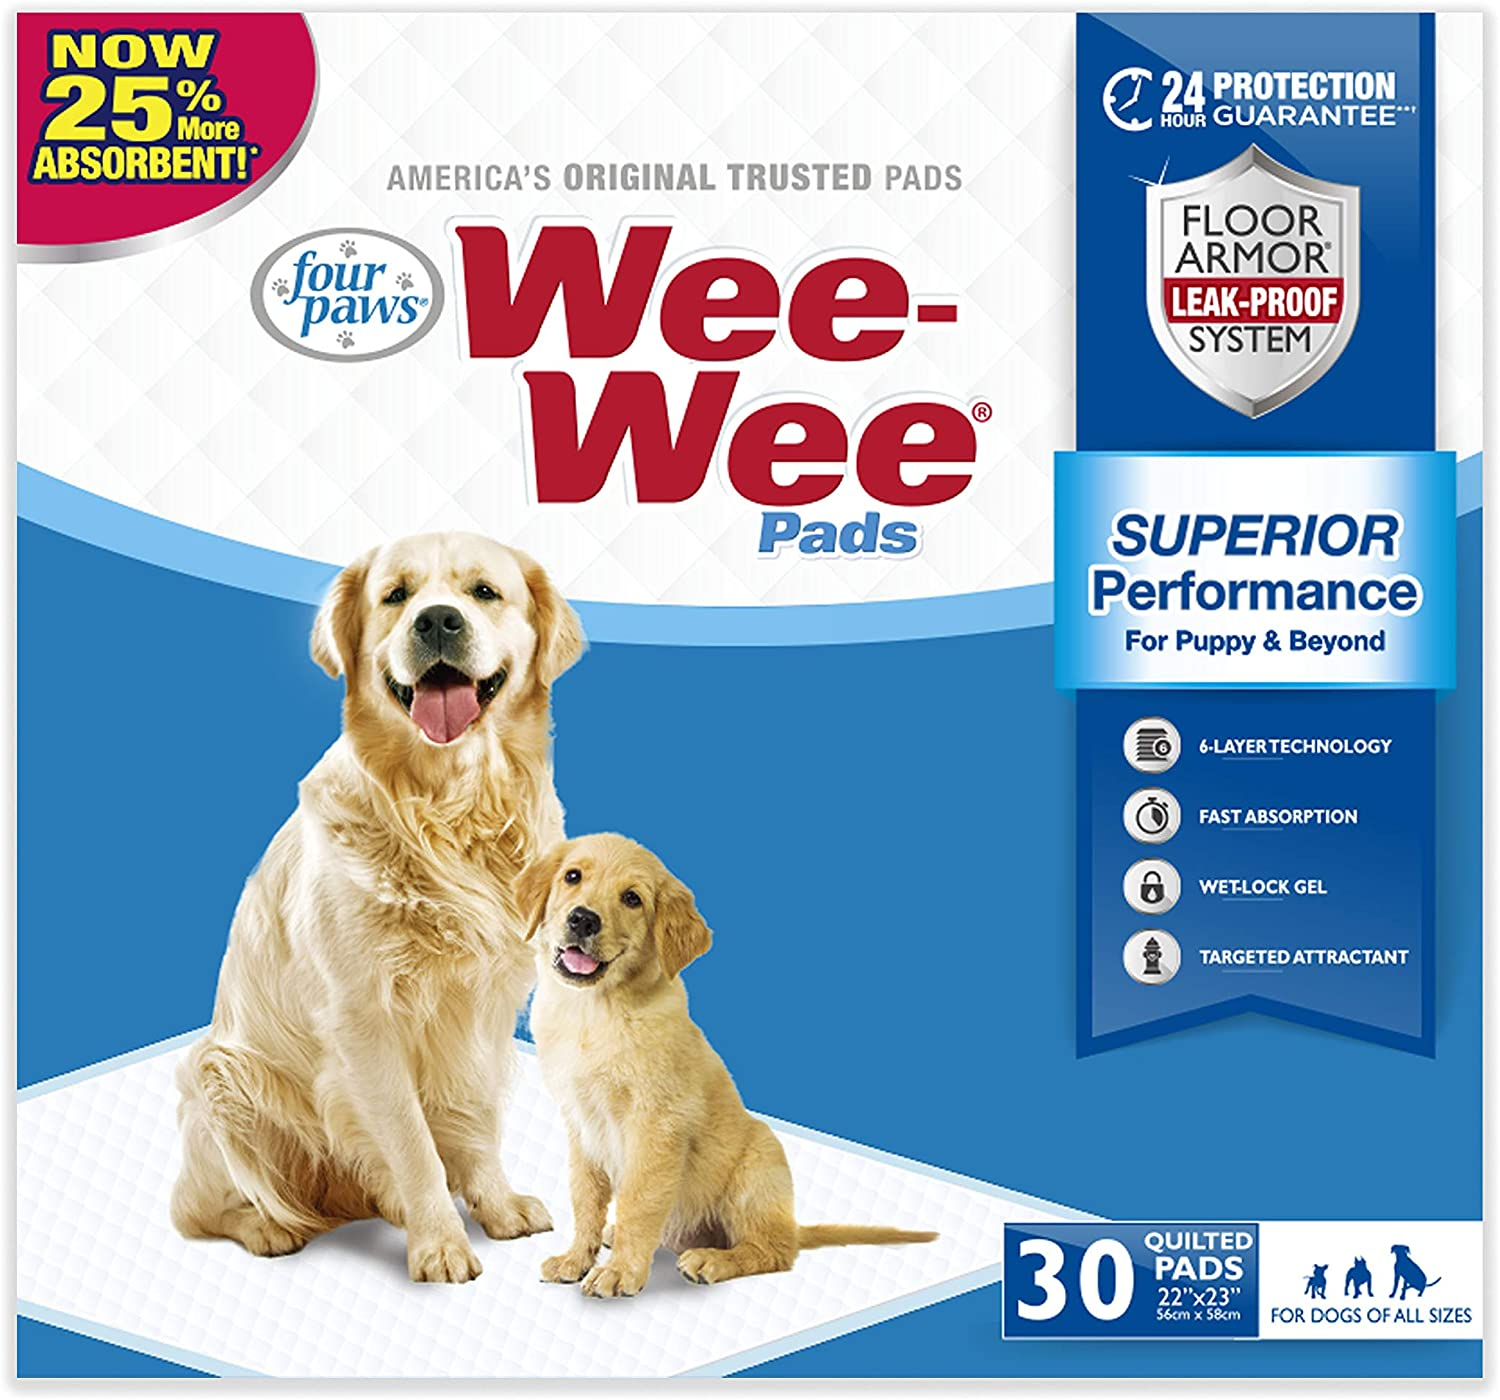 Wee -Wee Standard Size Puppy Pads for Dogs, 30 Count